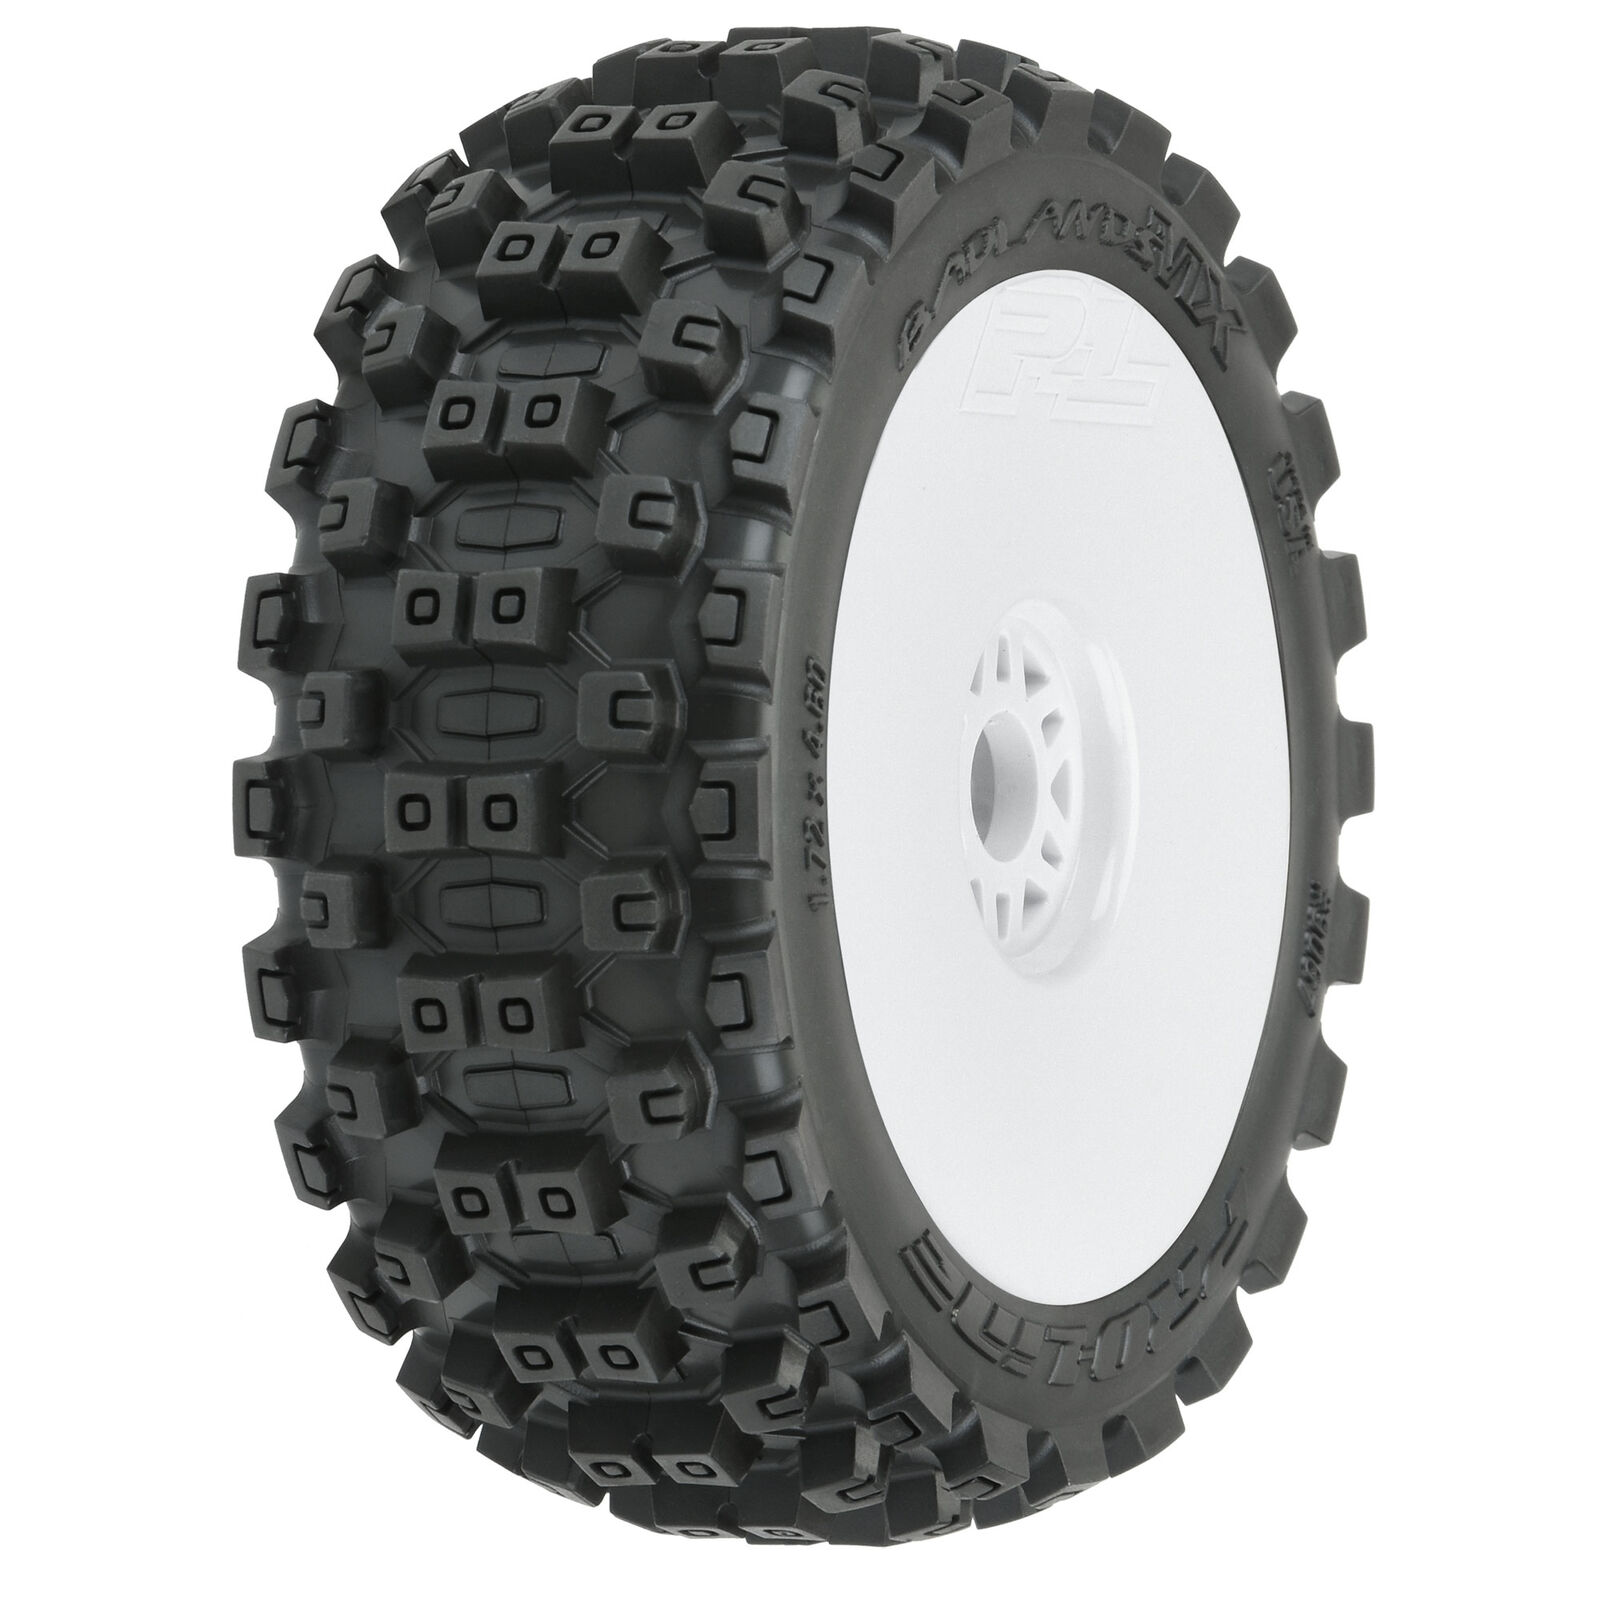 1/8 Badlands MX M2 Front/Rear Buggy Tires Mounted 17mm White (2)